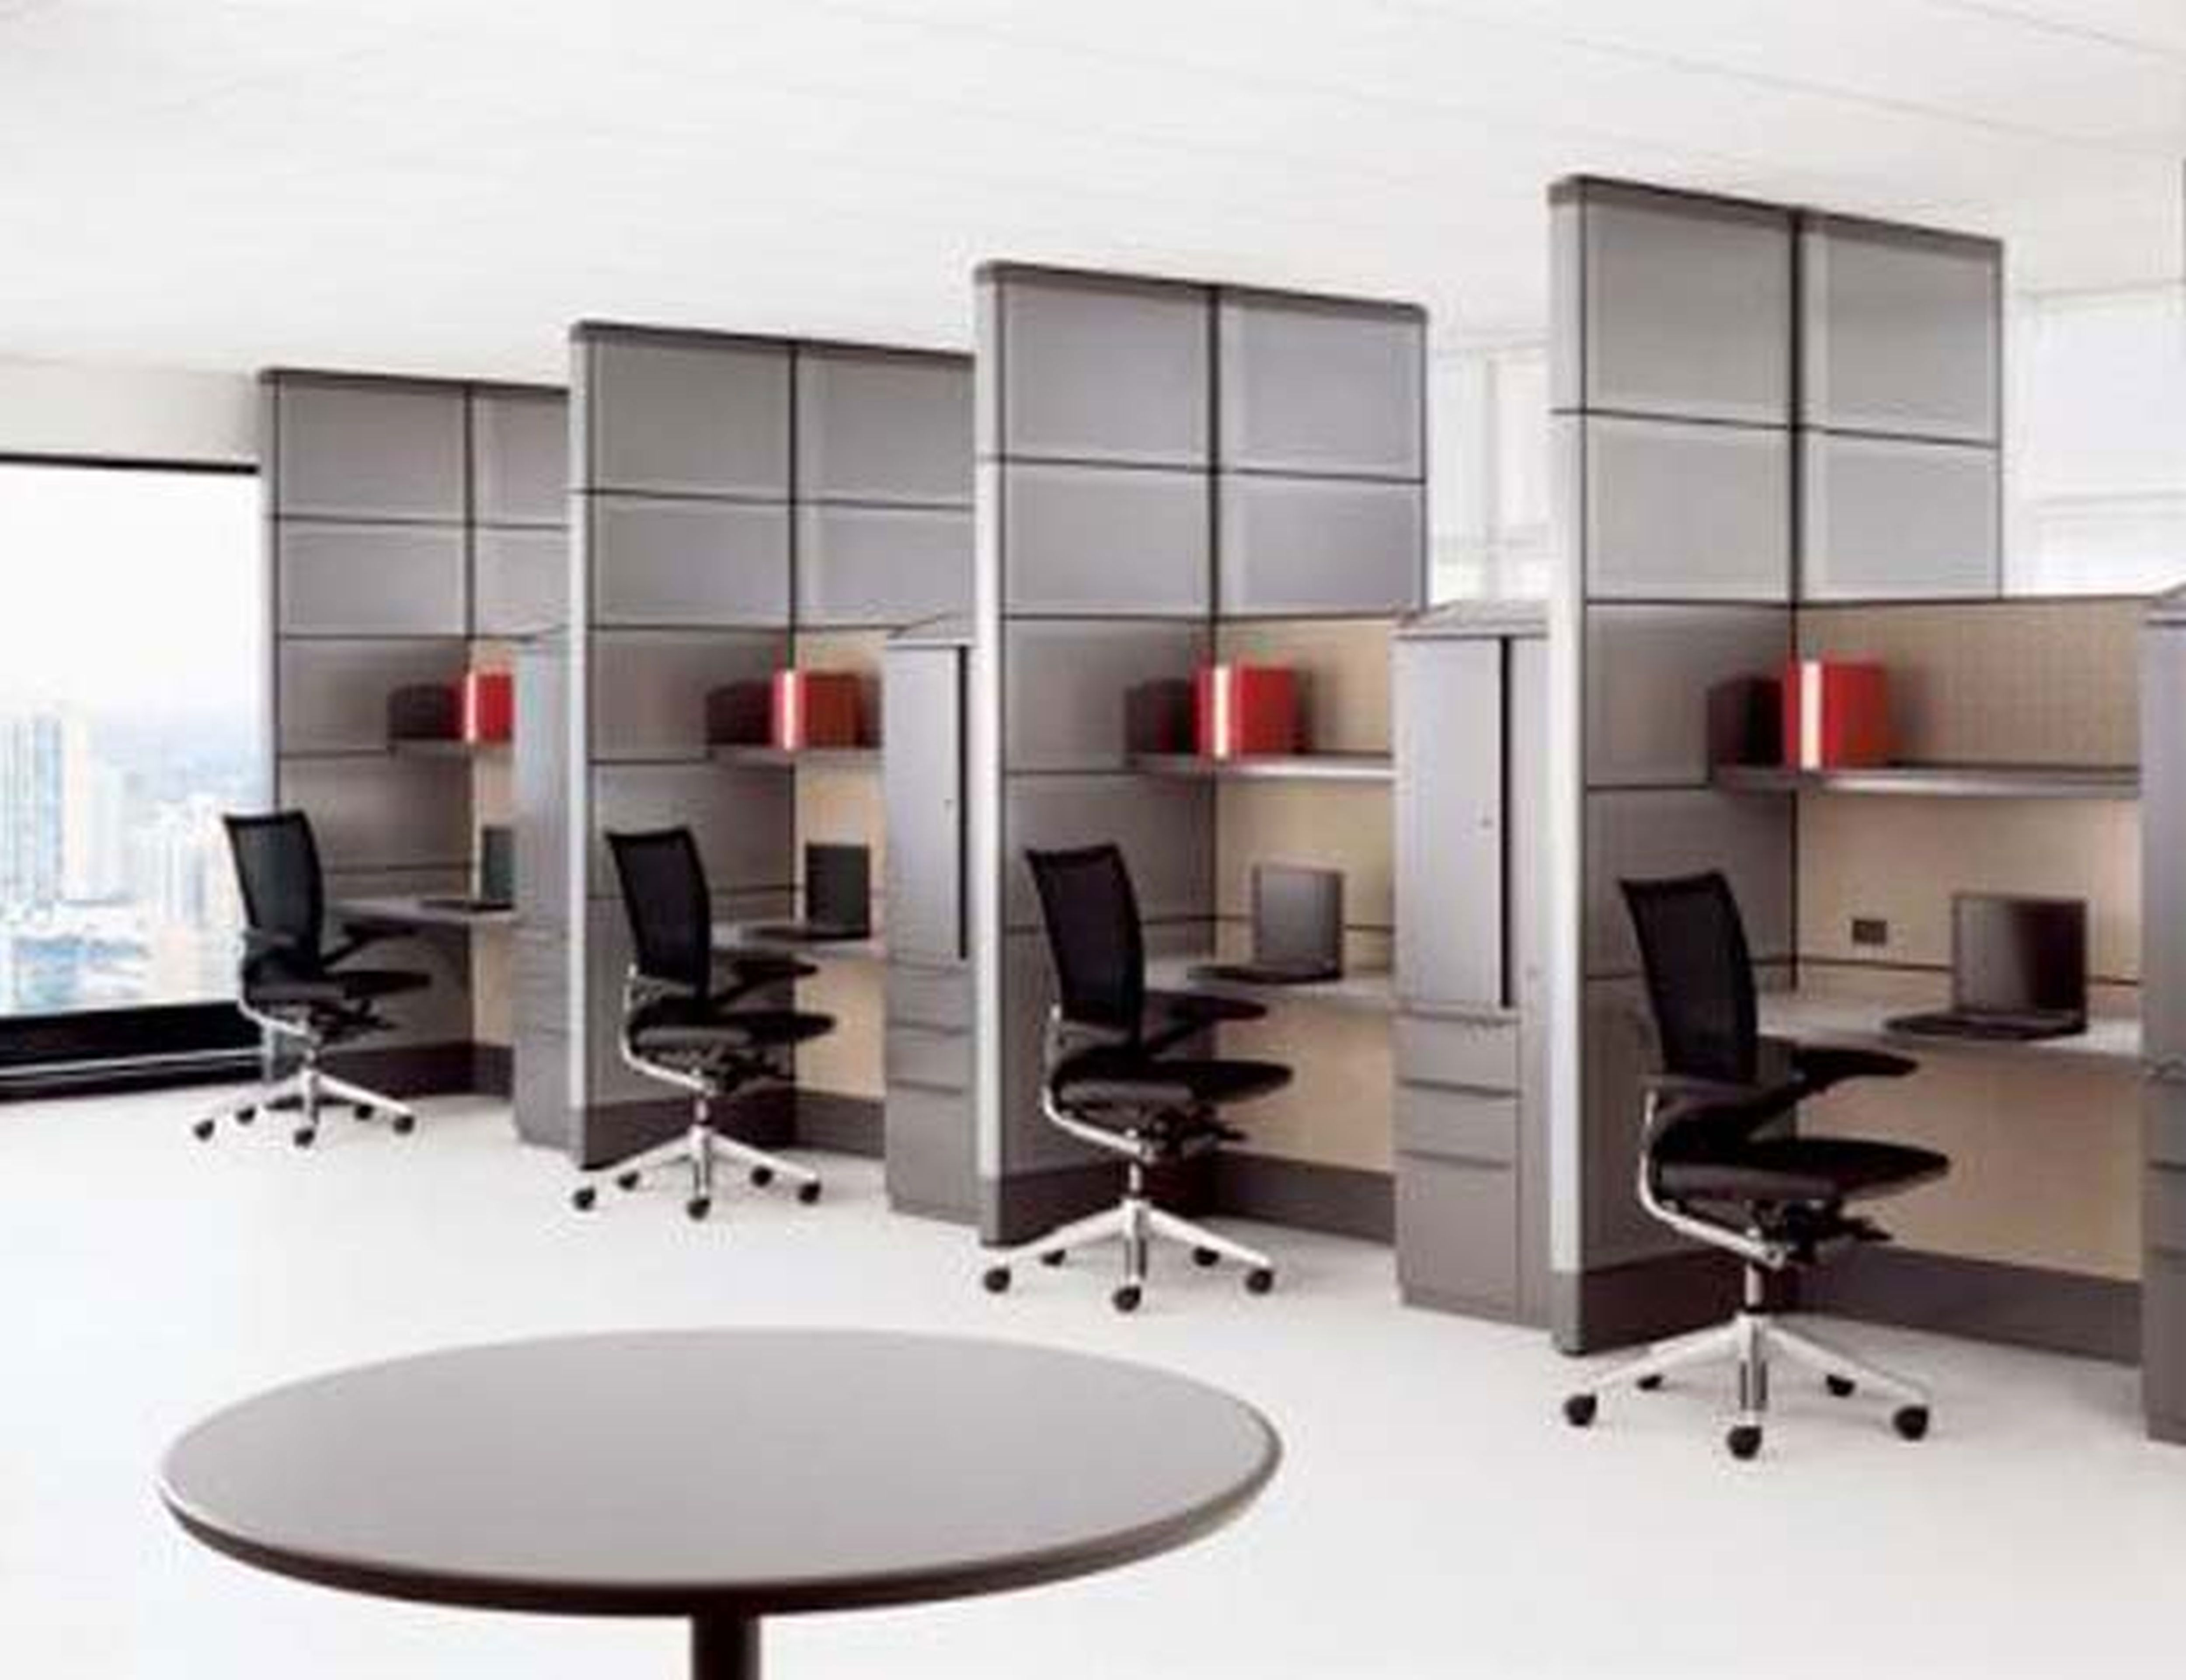 11 Charming Small Office Decoration Office Furniture Design Modern Office Design Office Space Design